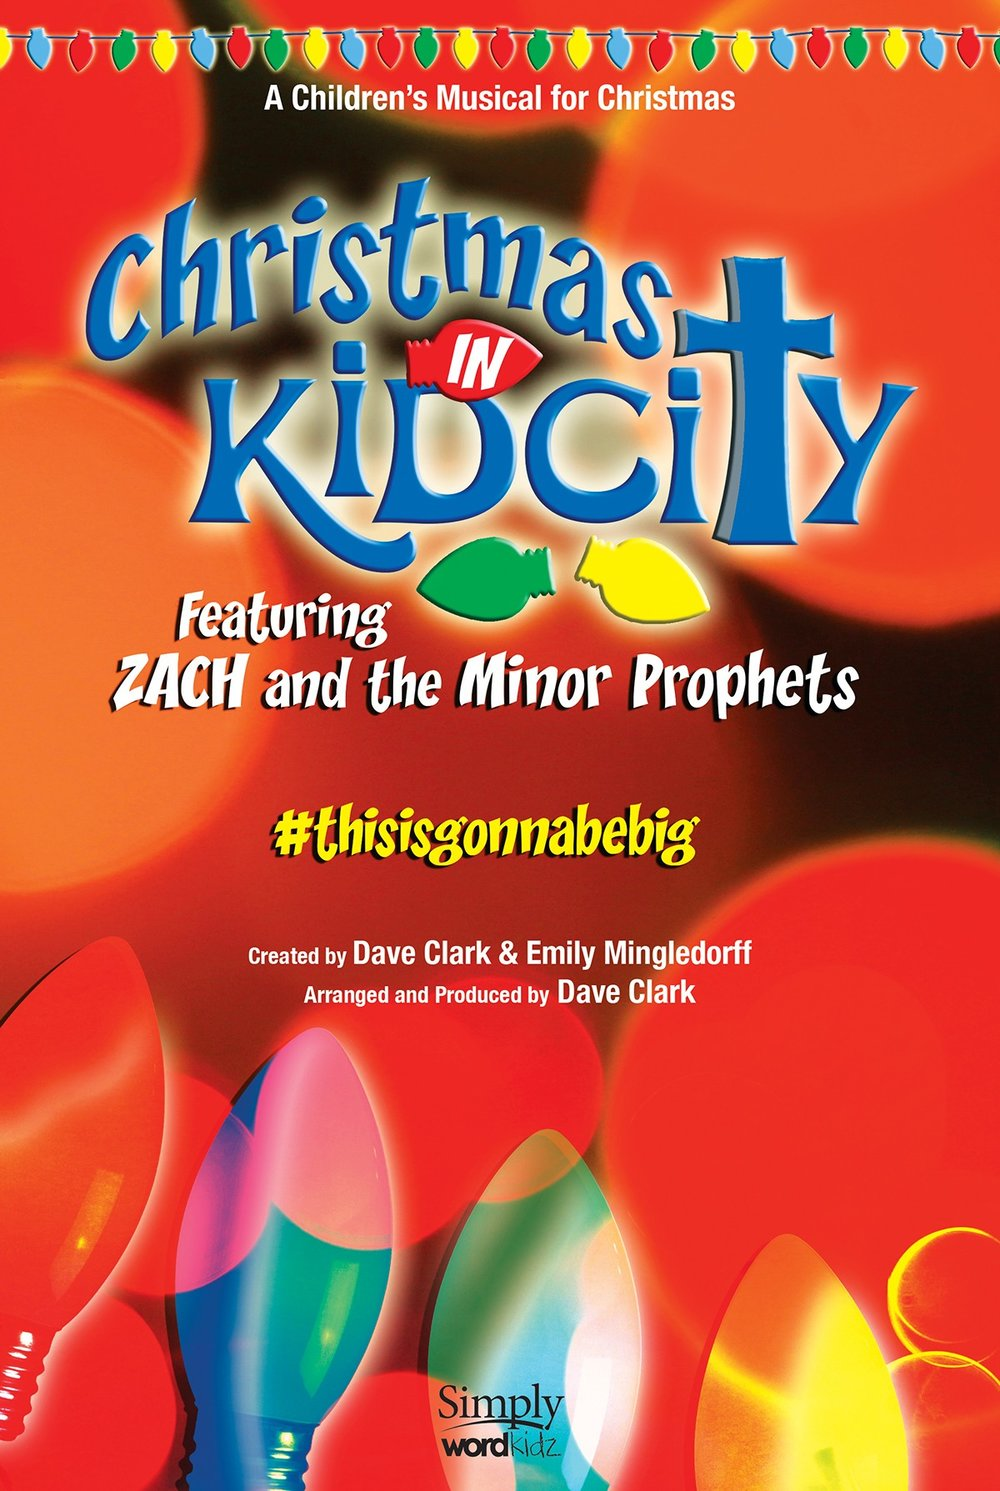 "Created by Dave Clark and Emily Mingledorff, the action all takes place within a church's kids ministry room, dubbed ""KidCity."" With the timeline leading up to their annual Christmas celebration, this 26-minute musical for kids choir is nonstop fun, chock-full of cleverly written songs (the kids will walk away knowing the major and minor prophets!), all supported by an effortlessly effective, heartwarming script."